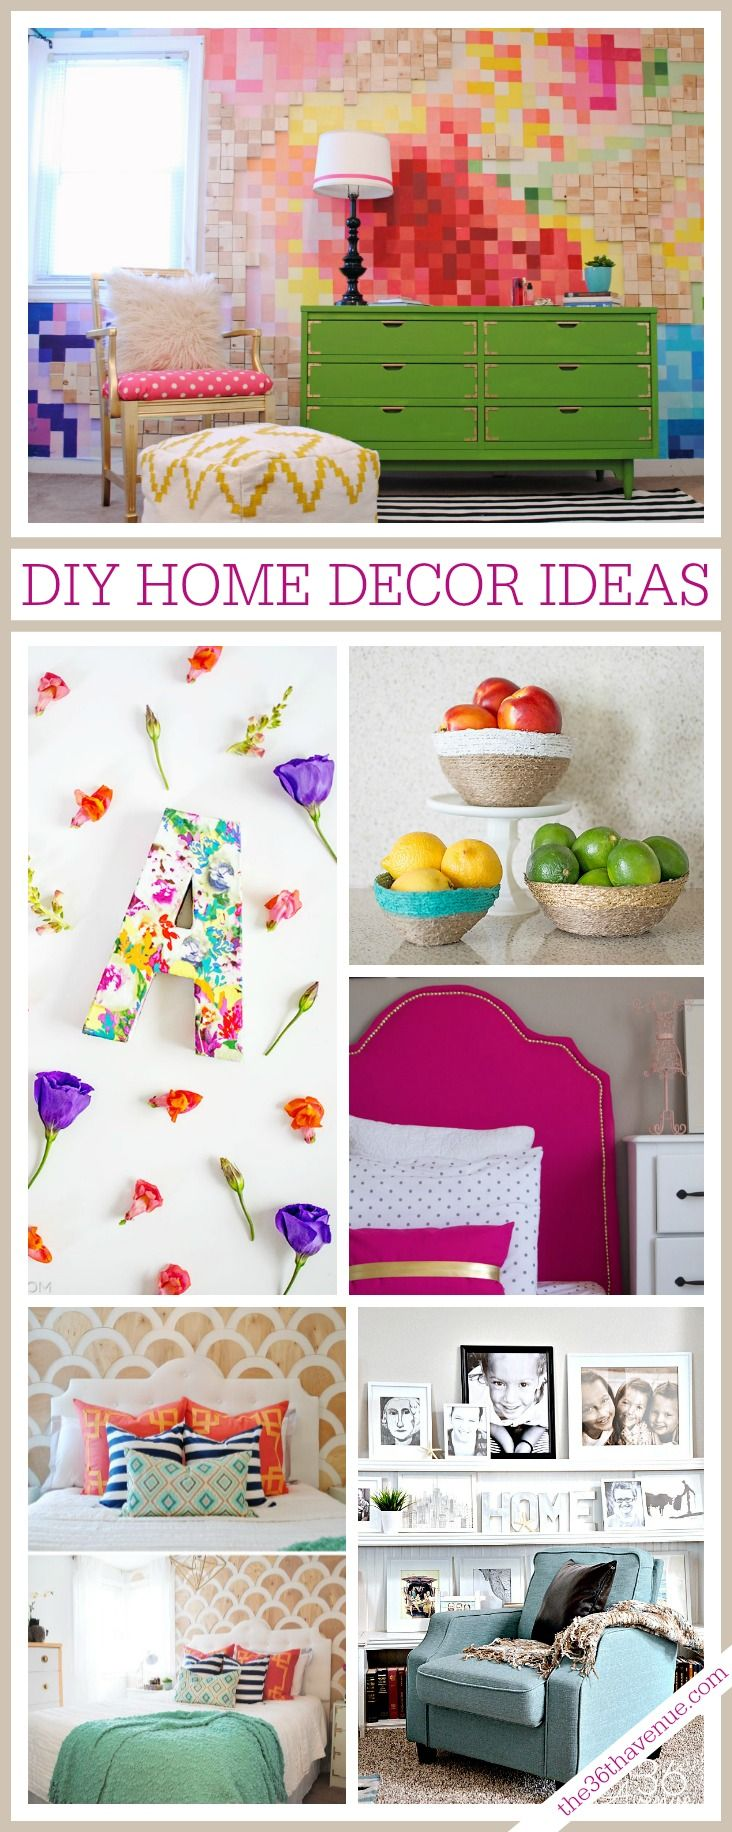 Loving these AMAZING DIY Home Decor Ideas. [ PropFunds.com ] #home #funds #investment